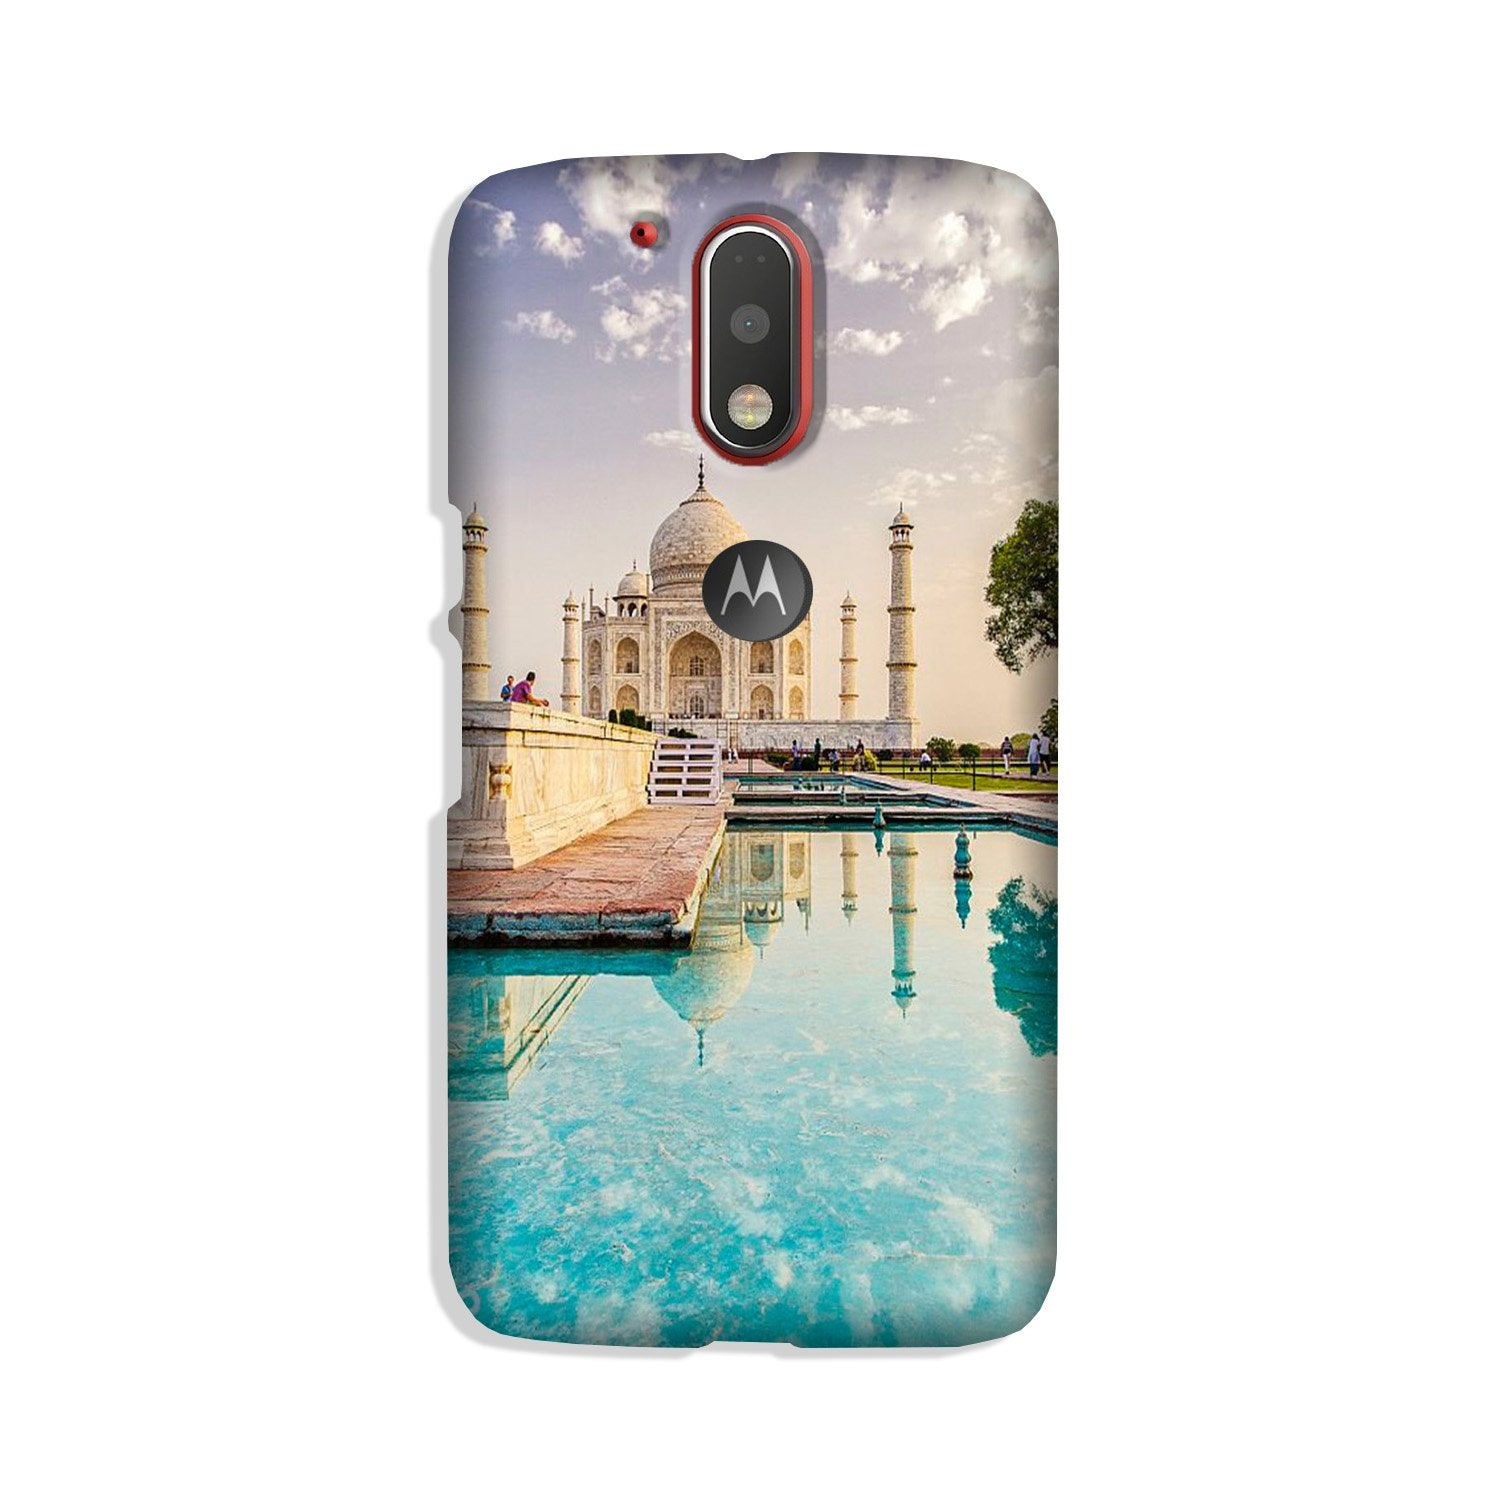 Tajmahal Case for Moto G4 Plus